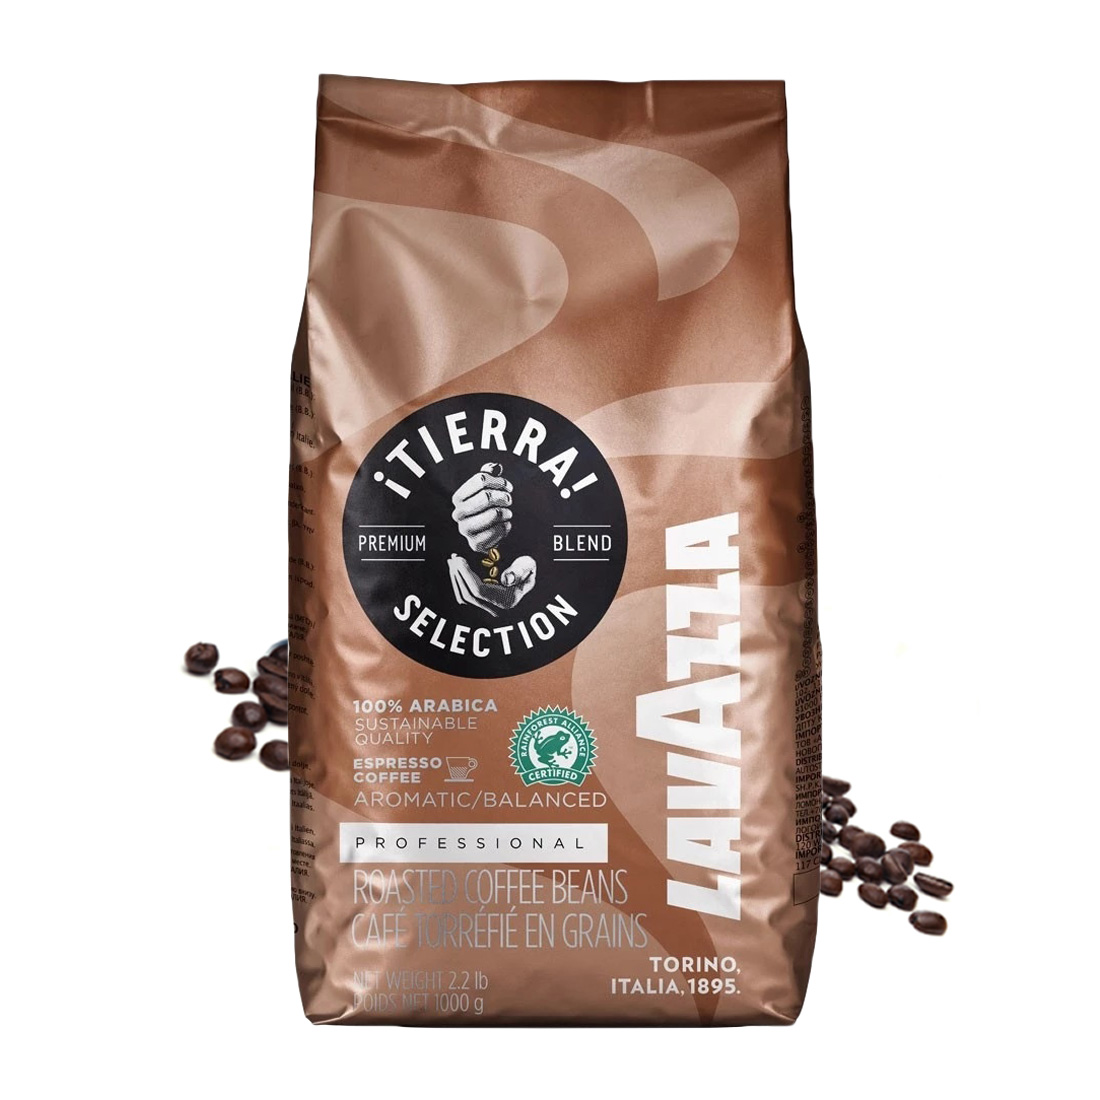 Lavazza Tierra Selection cafea boabe 1kg